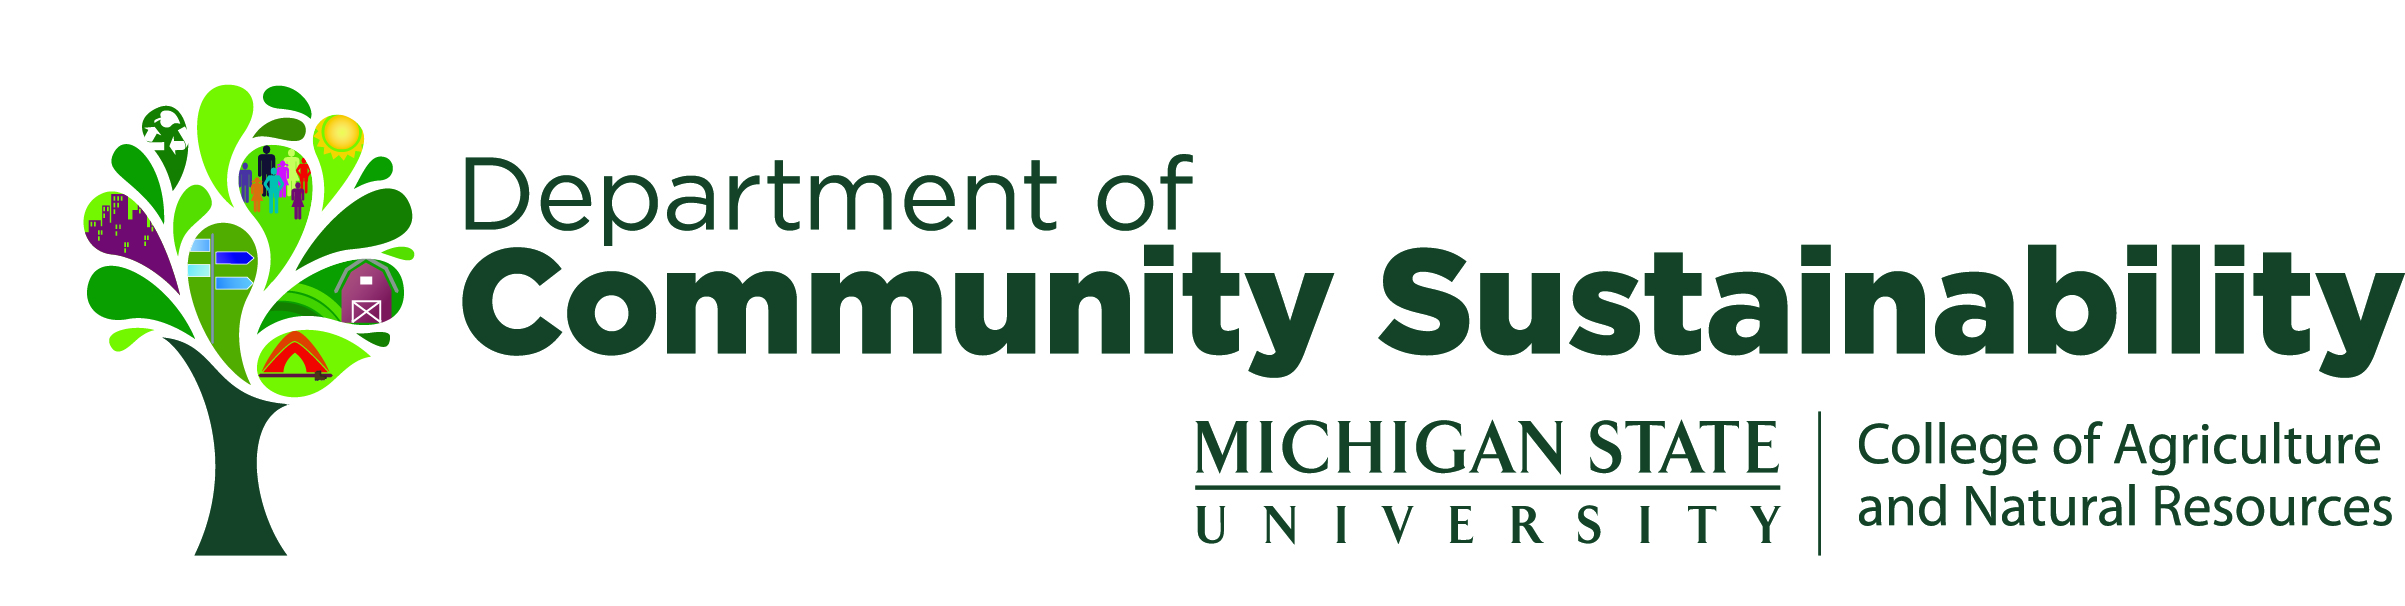 Logo for Department of Community Sustainability, Michigan State University